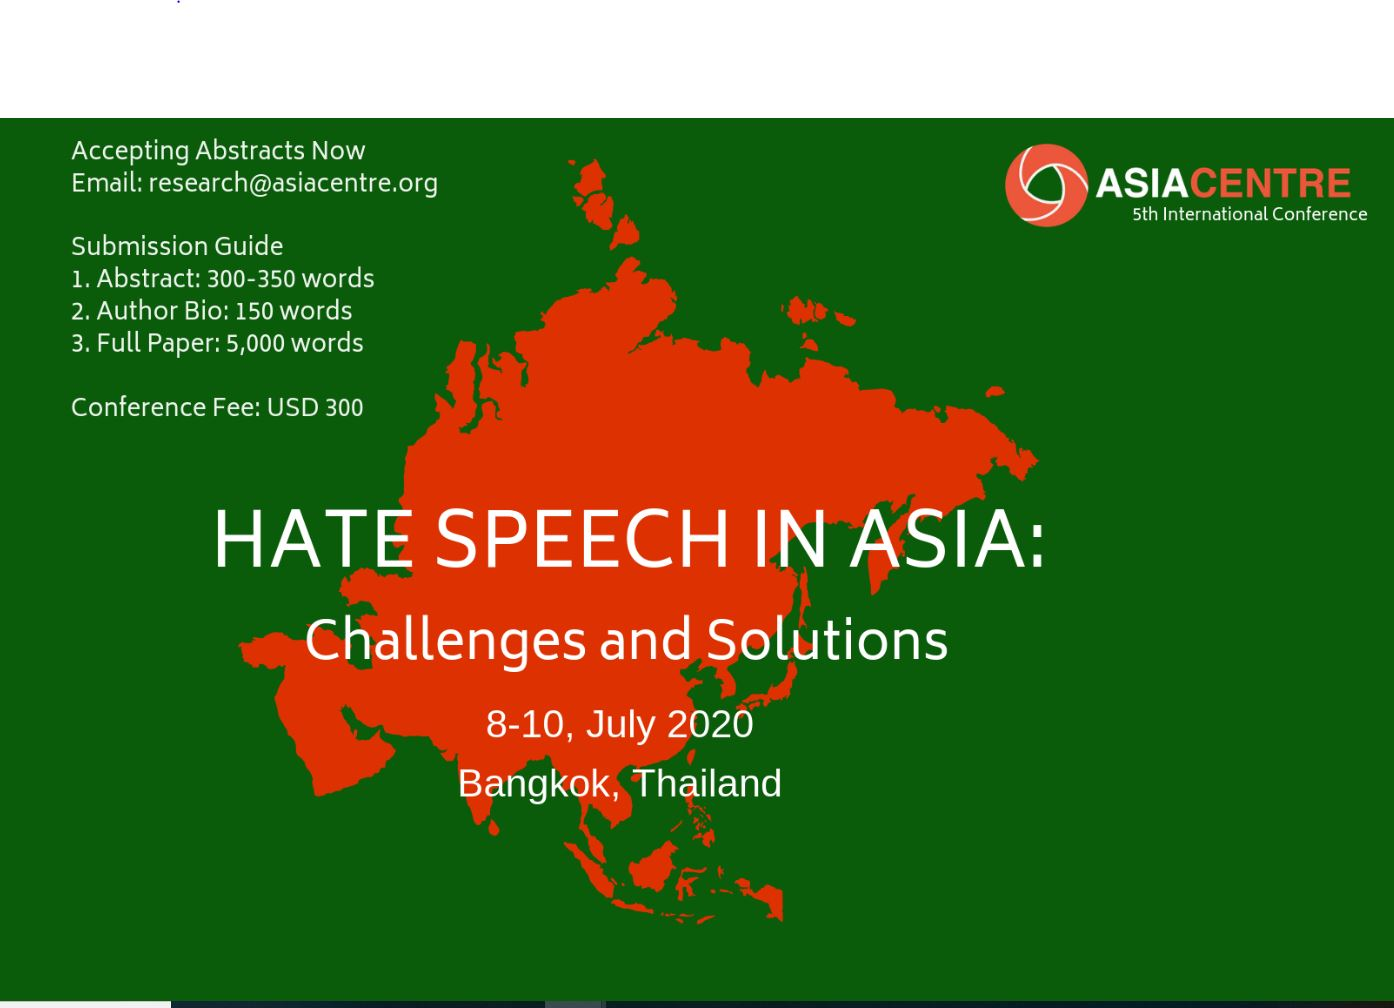 CfP: Conference on Hate Speech in Asia @ Asiacentre, Bangkok [July 8-10, 2020]: Submit by Dec 15